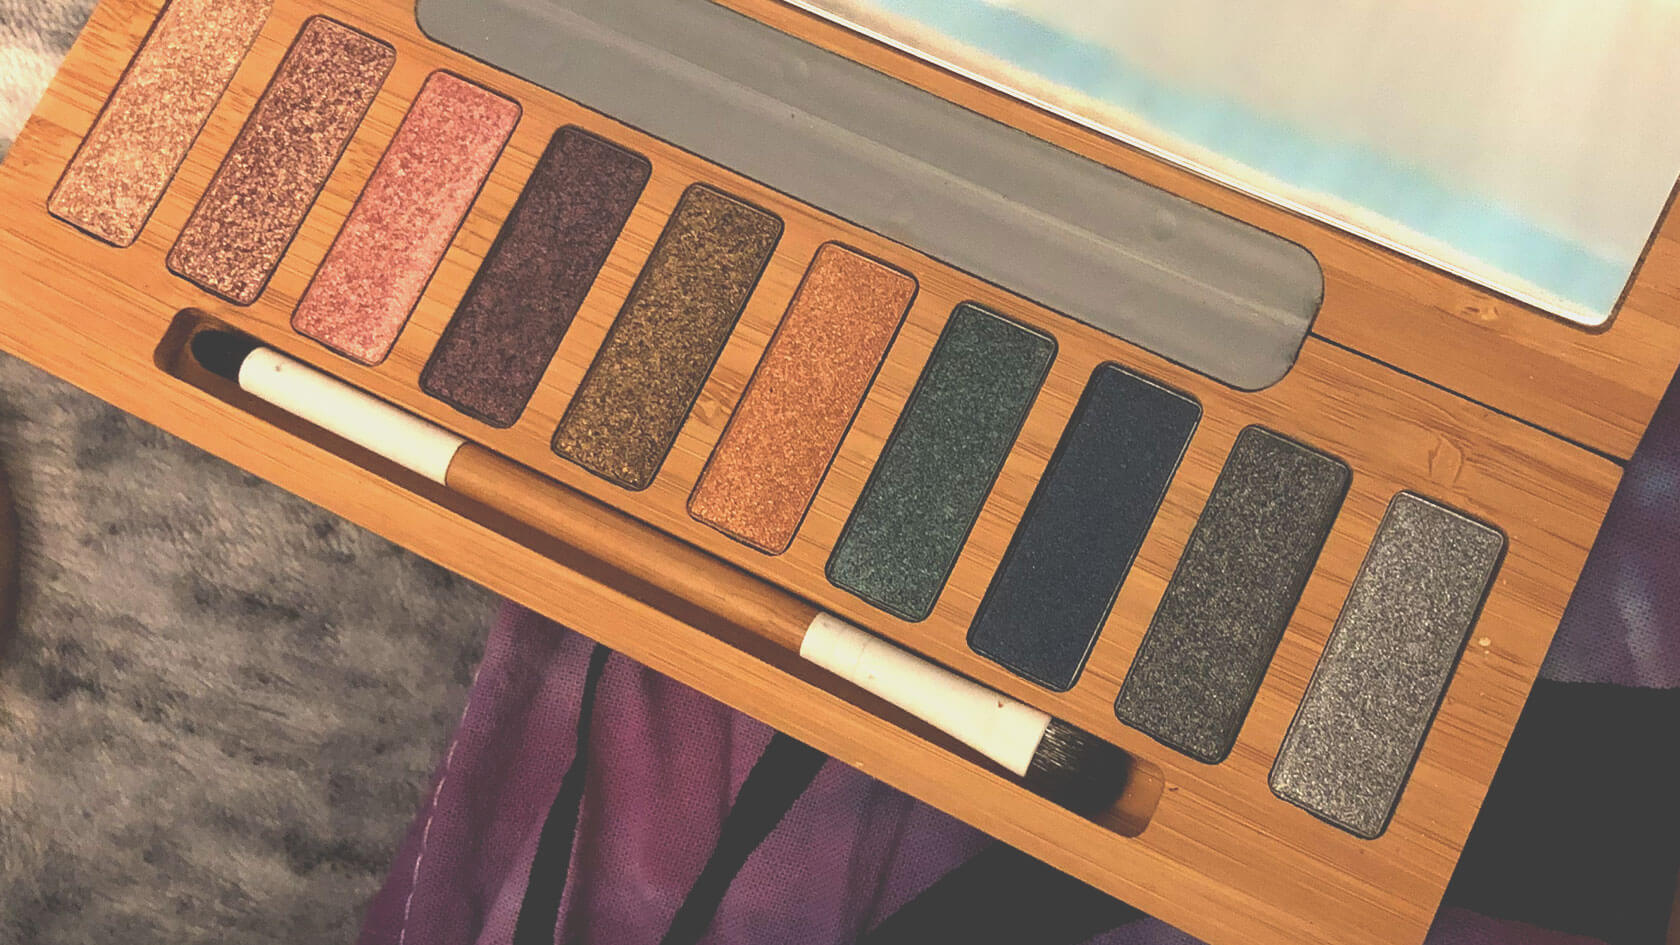 Glittery eyeshadow palette made from bamboo